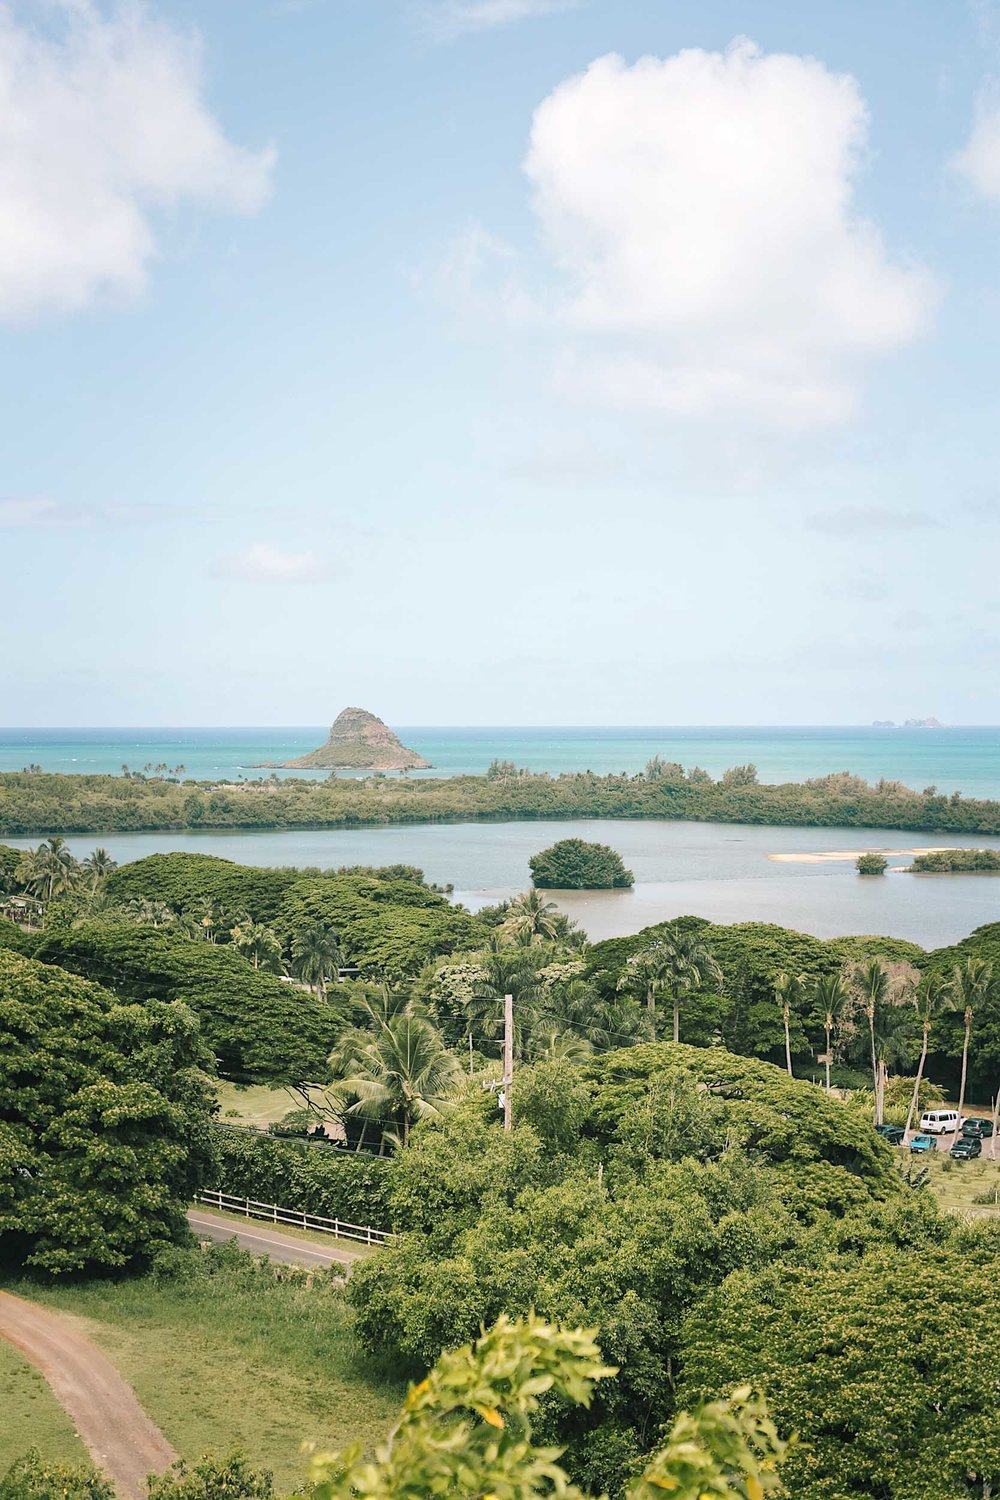 Kualoa Ranch, one of the most beautiful places in Oahu